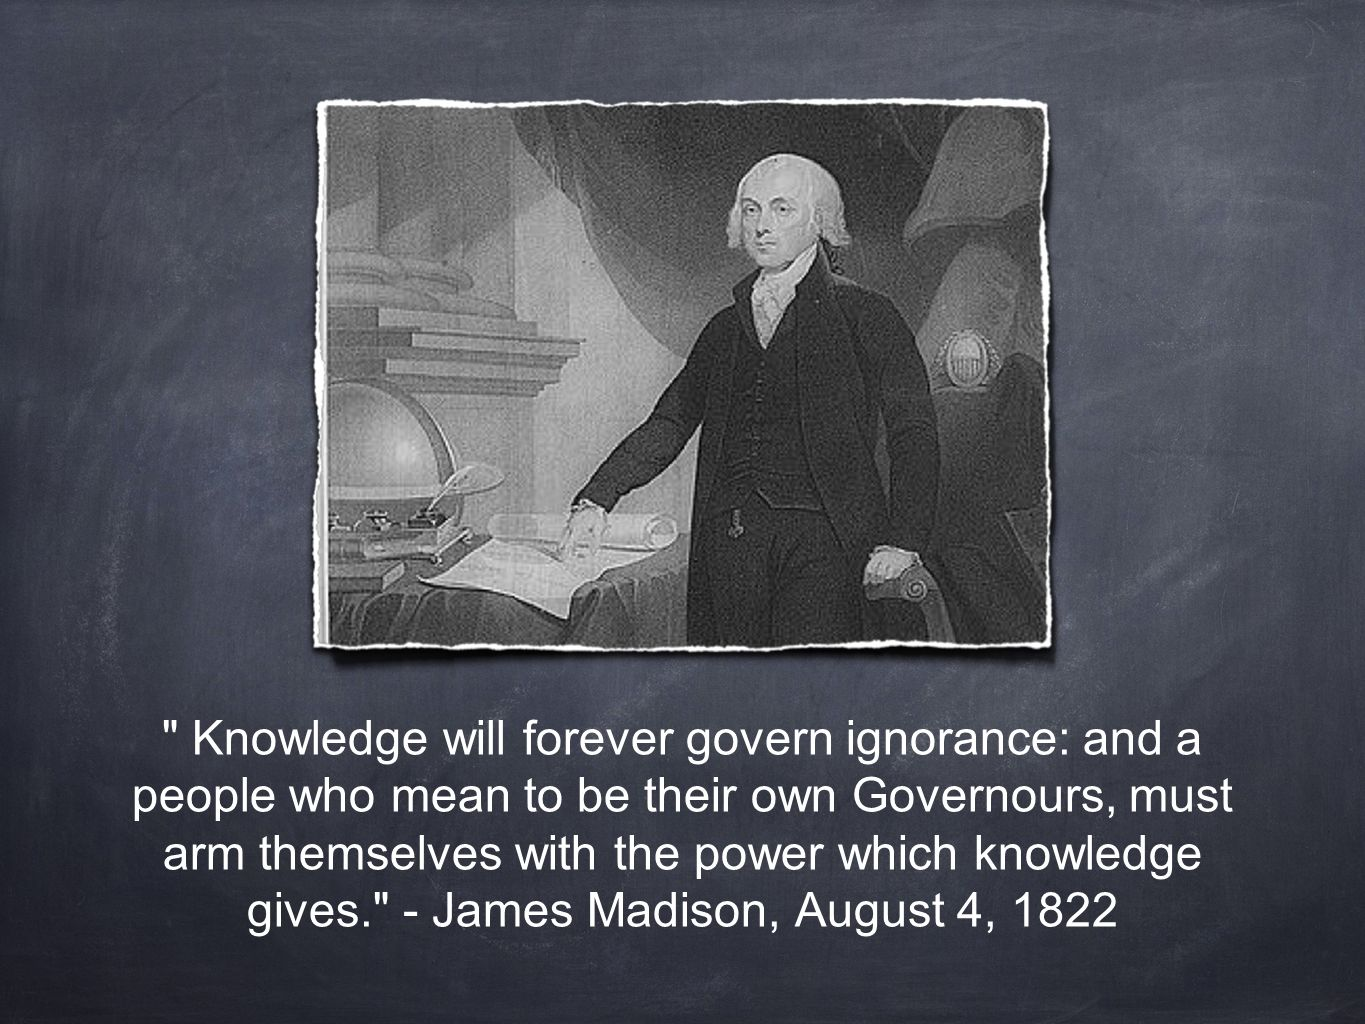 Knowledge will forever govern ignorance: and a people who mean to be their own Governours, must arm themselves with the power which knowledge gives. - James Madison, August 4, 1822